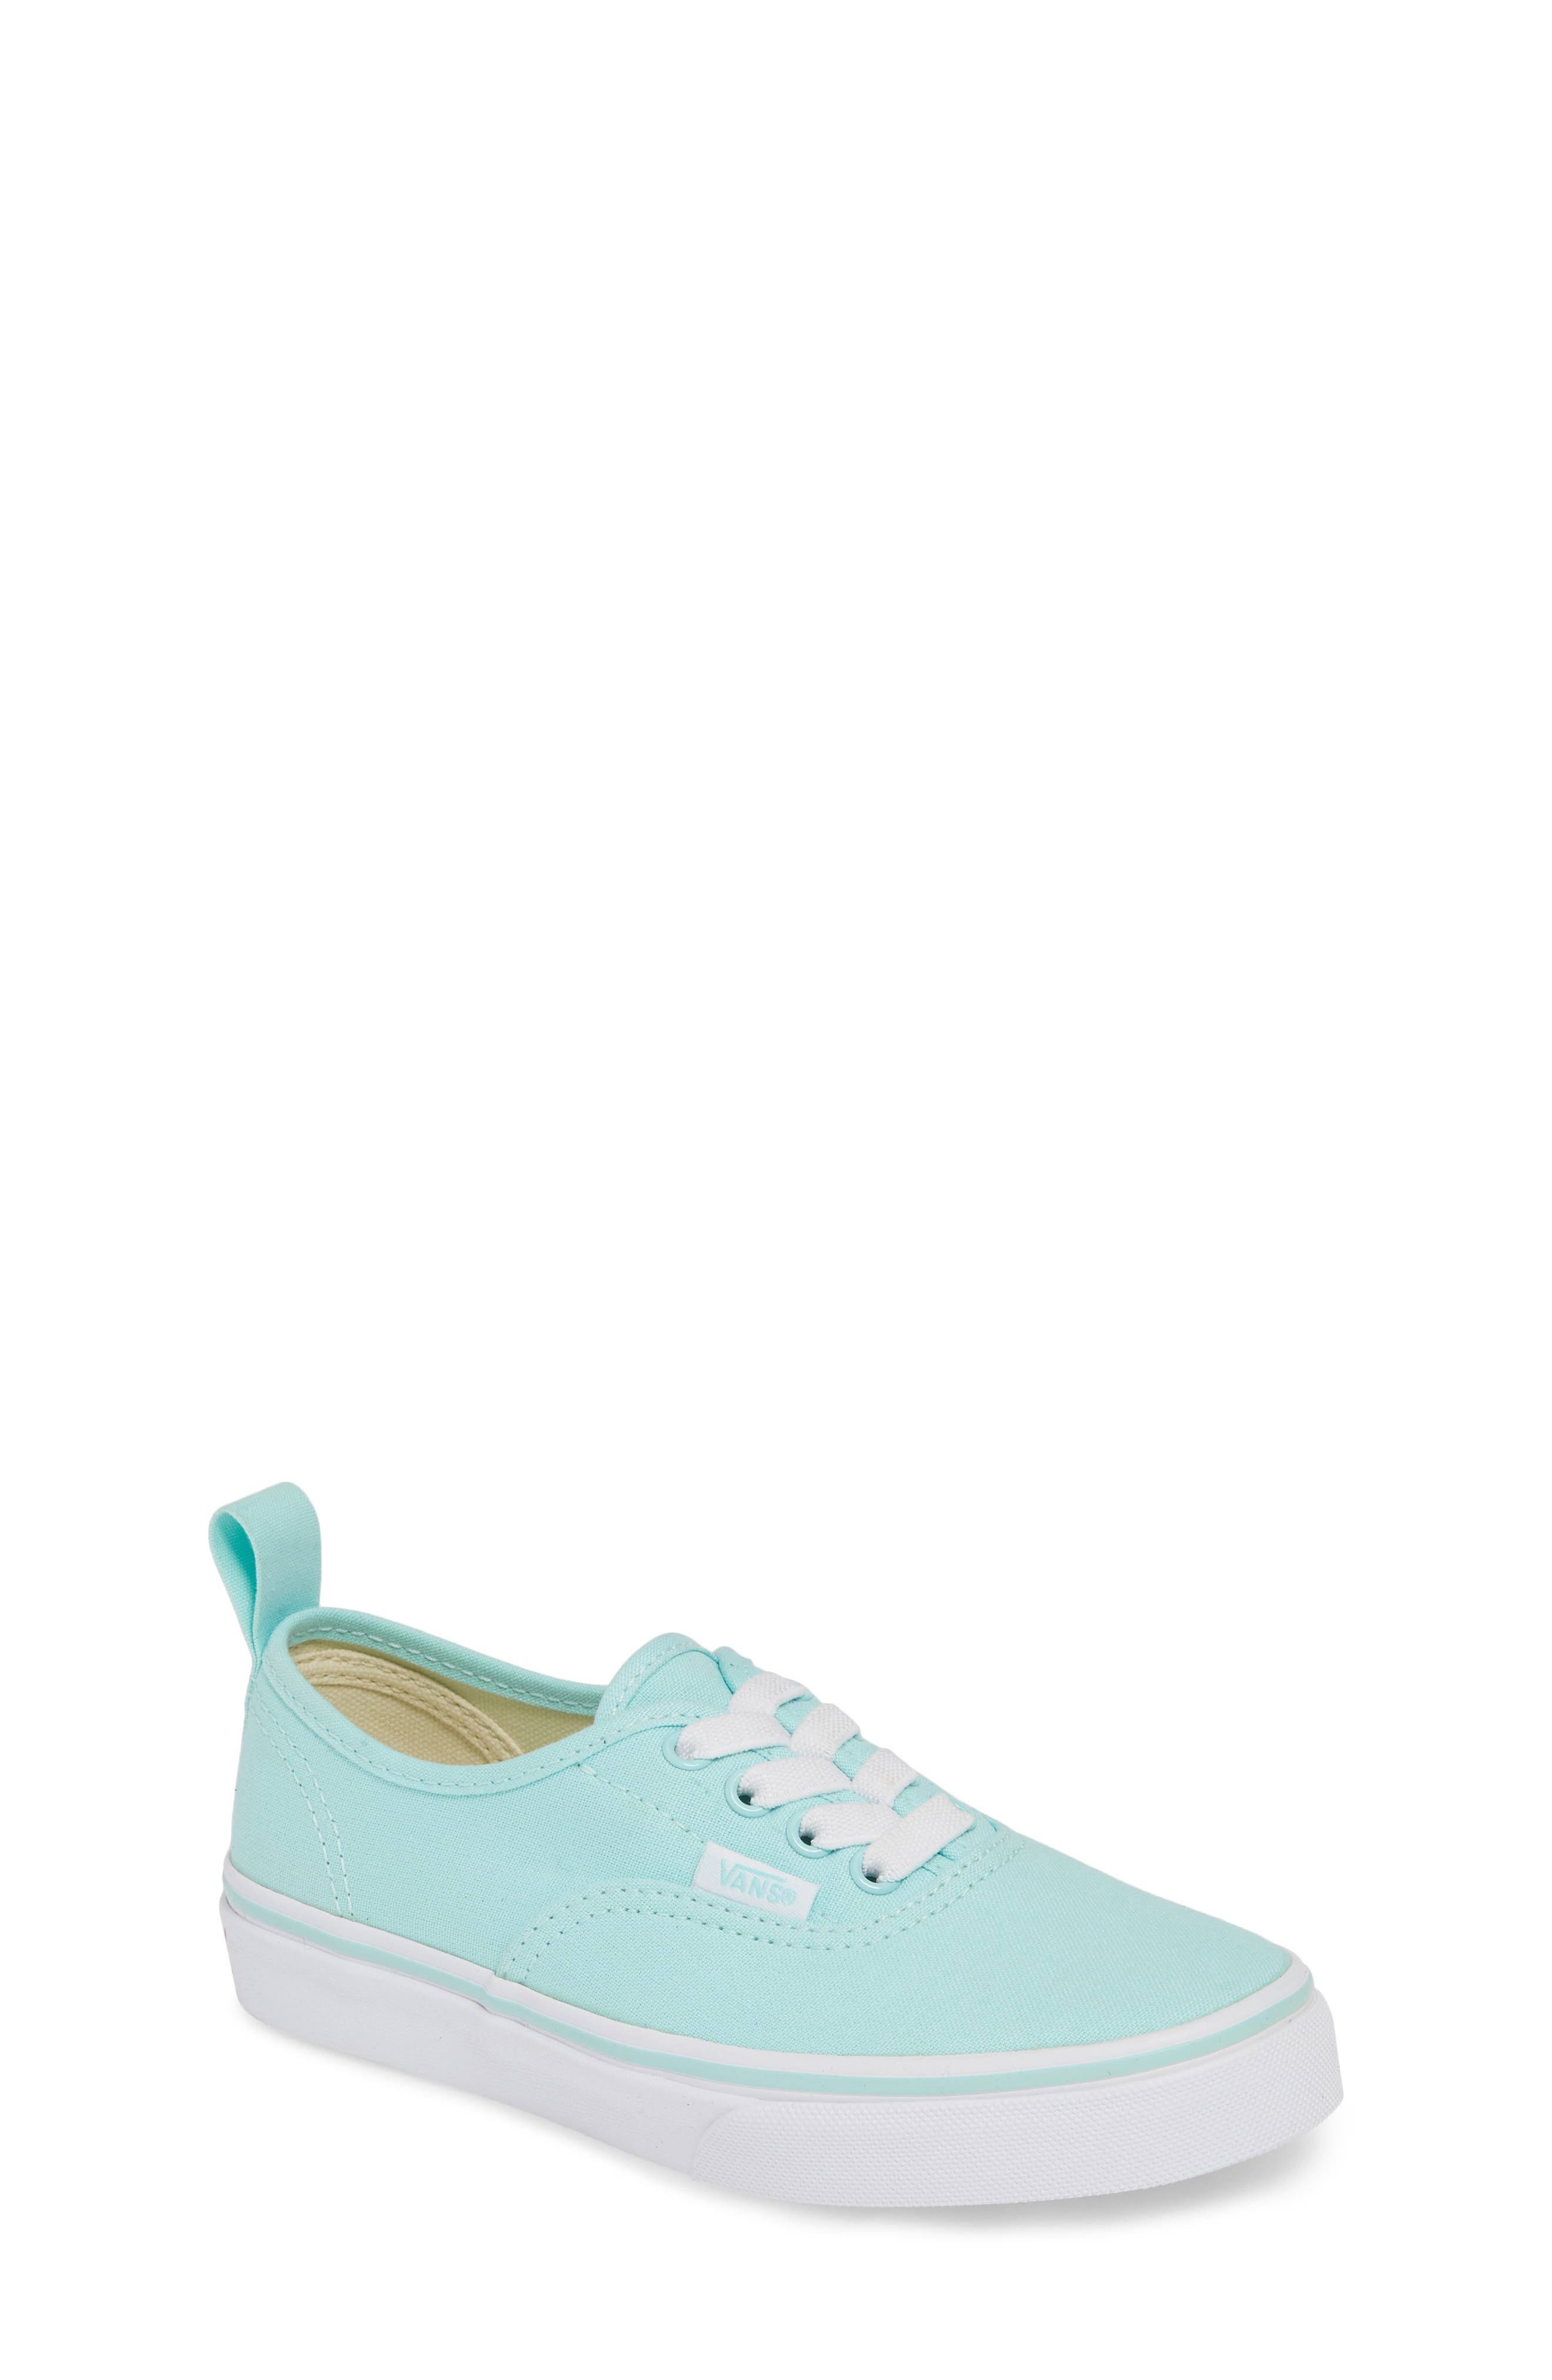 VANS Authentic Sneaker, Main, color, BLUE TINT/ TRUE WHITE